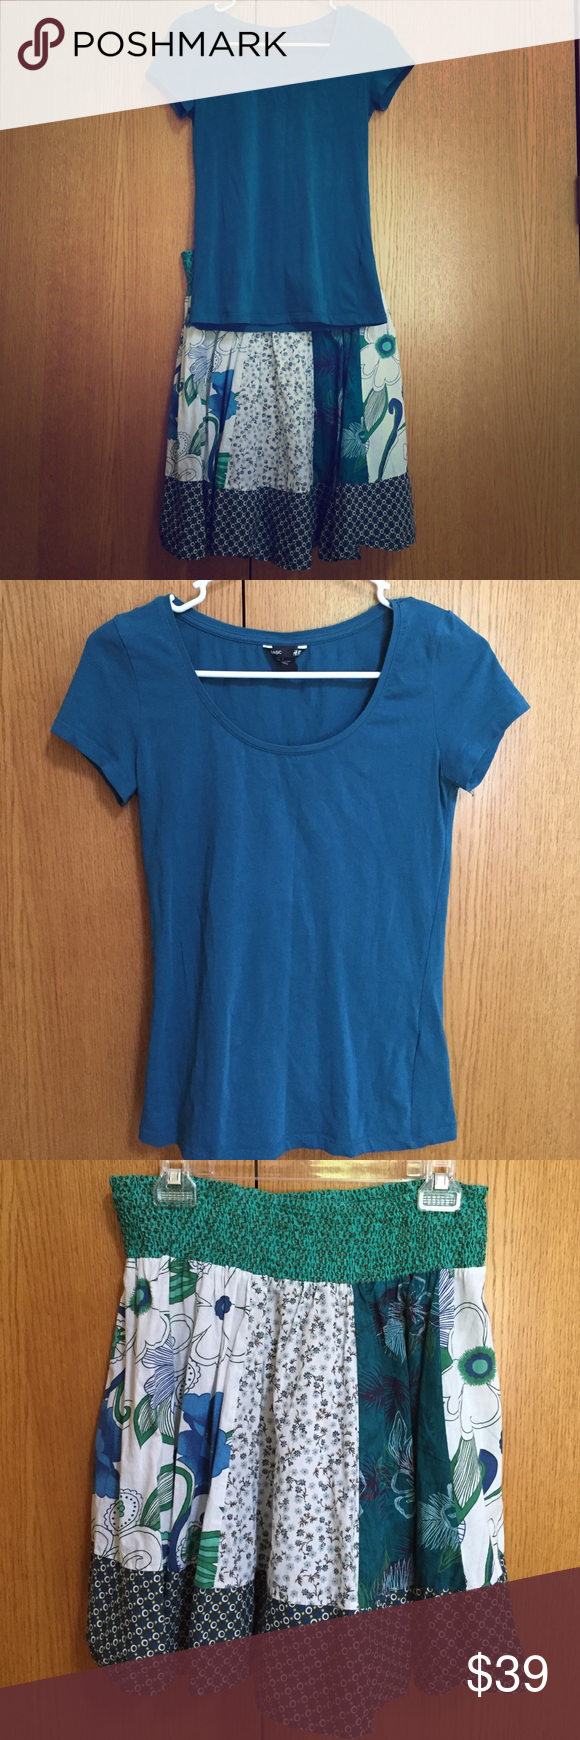 """Teal short sleeve top and color coordinated Skirt Size small teal EUC short sleeve H&M top with NWOT skirt 20"""" length, stretchy waist, Fire Los Angeles size M skirt colors match top- teal, white, blue, green pattern. Skirt fits small to medium. Nice outfit! Fire Los Angeles Other"""